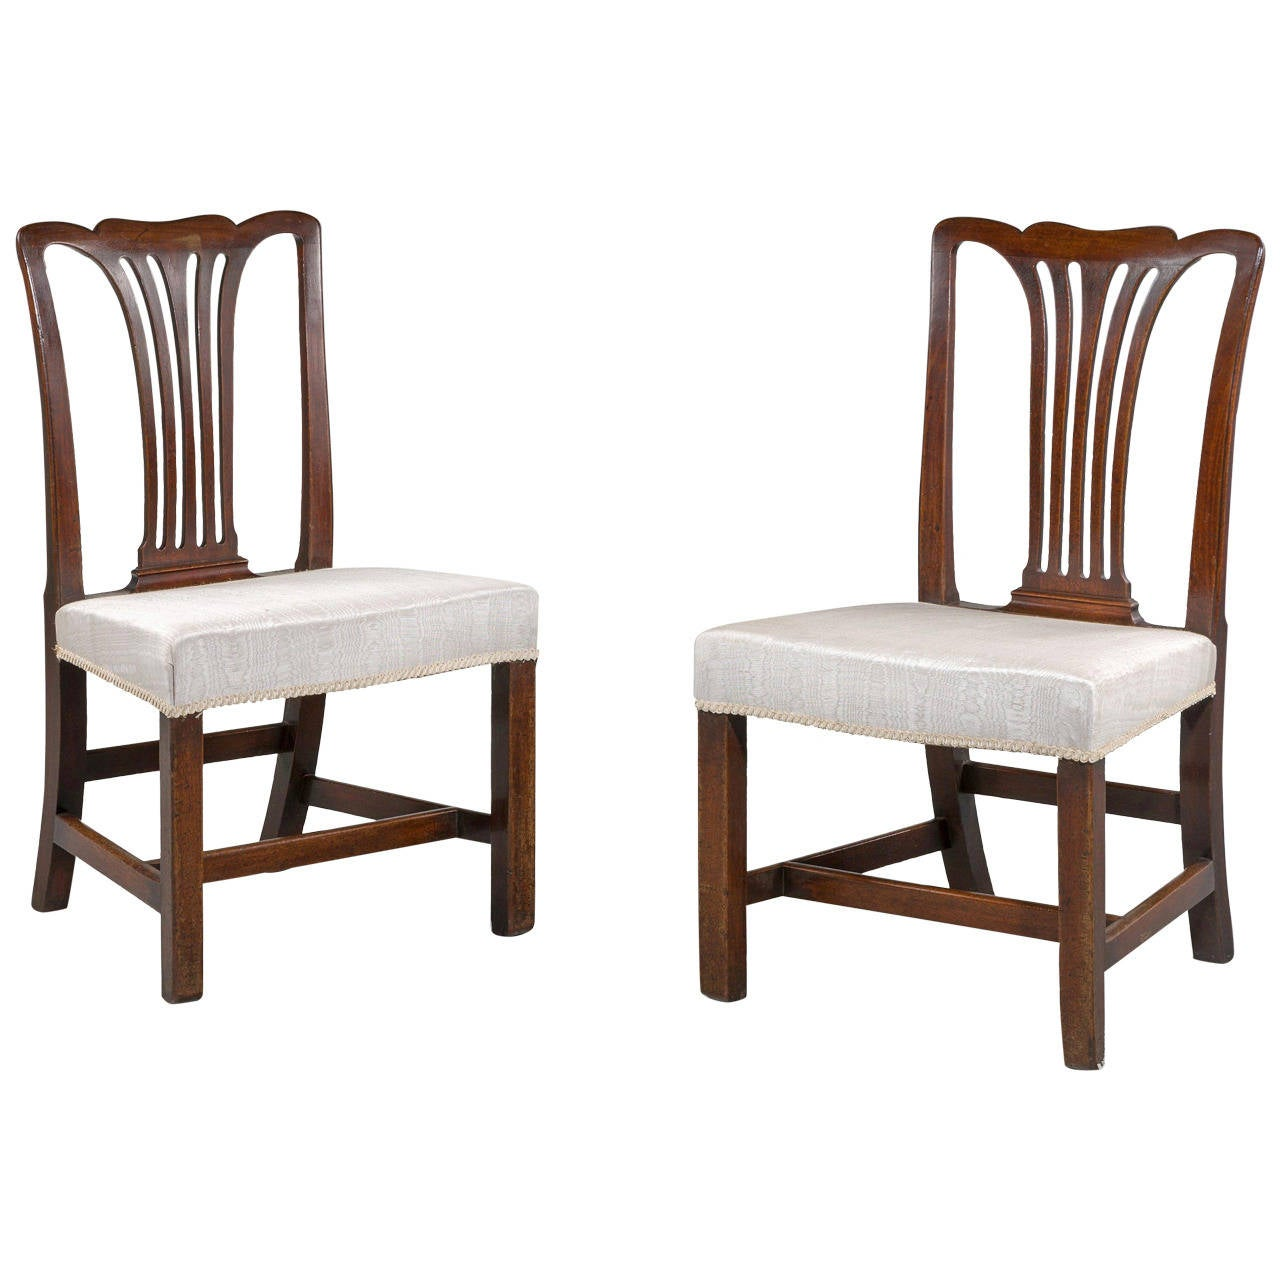 Walnut chippendale side chair for sale at 1stdibs for Side chairs for sale